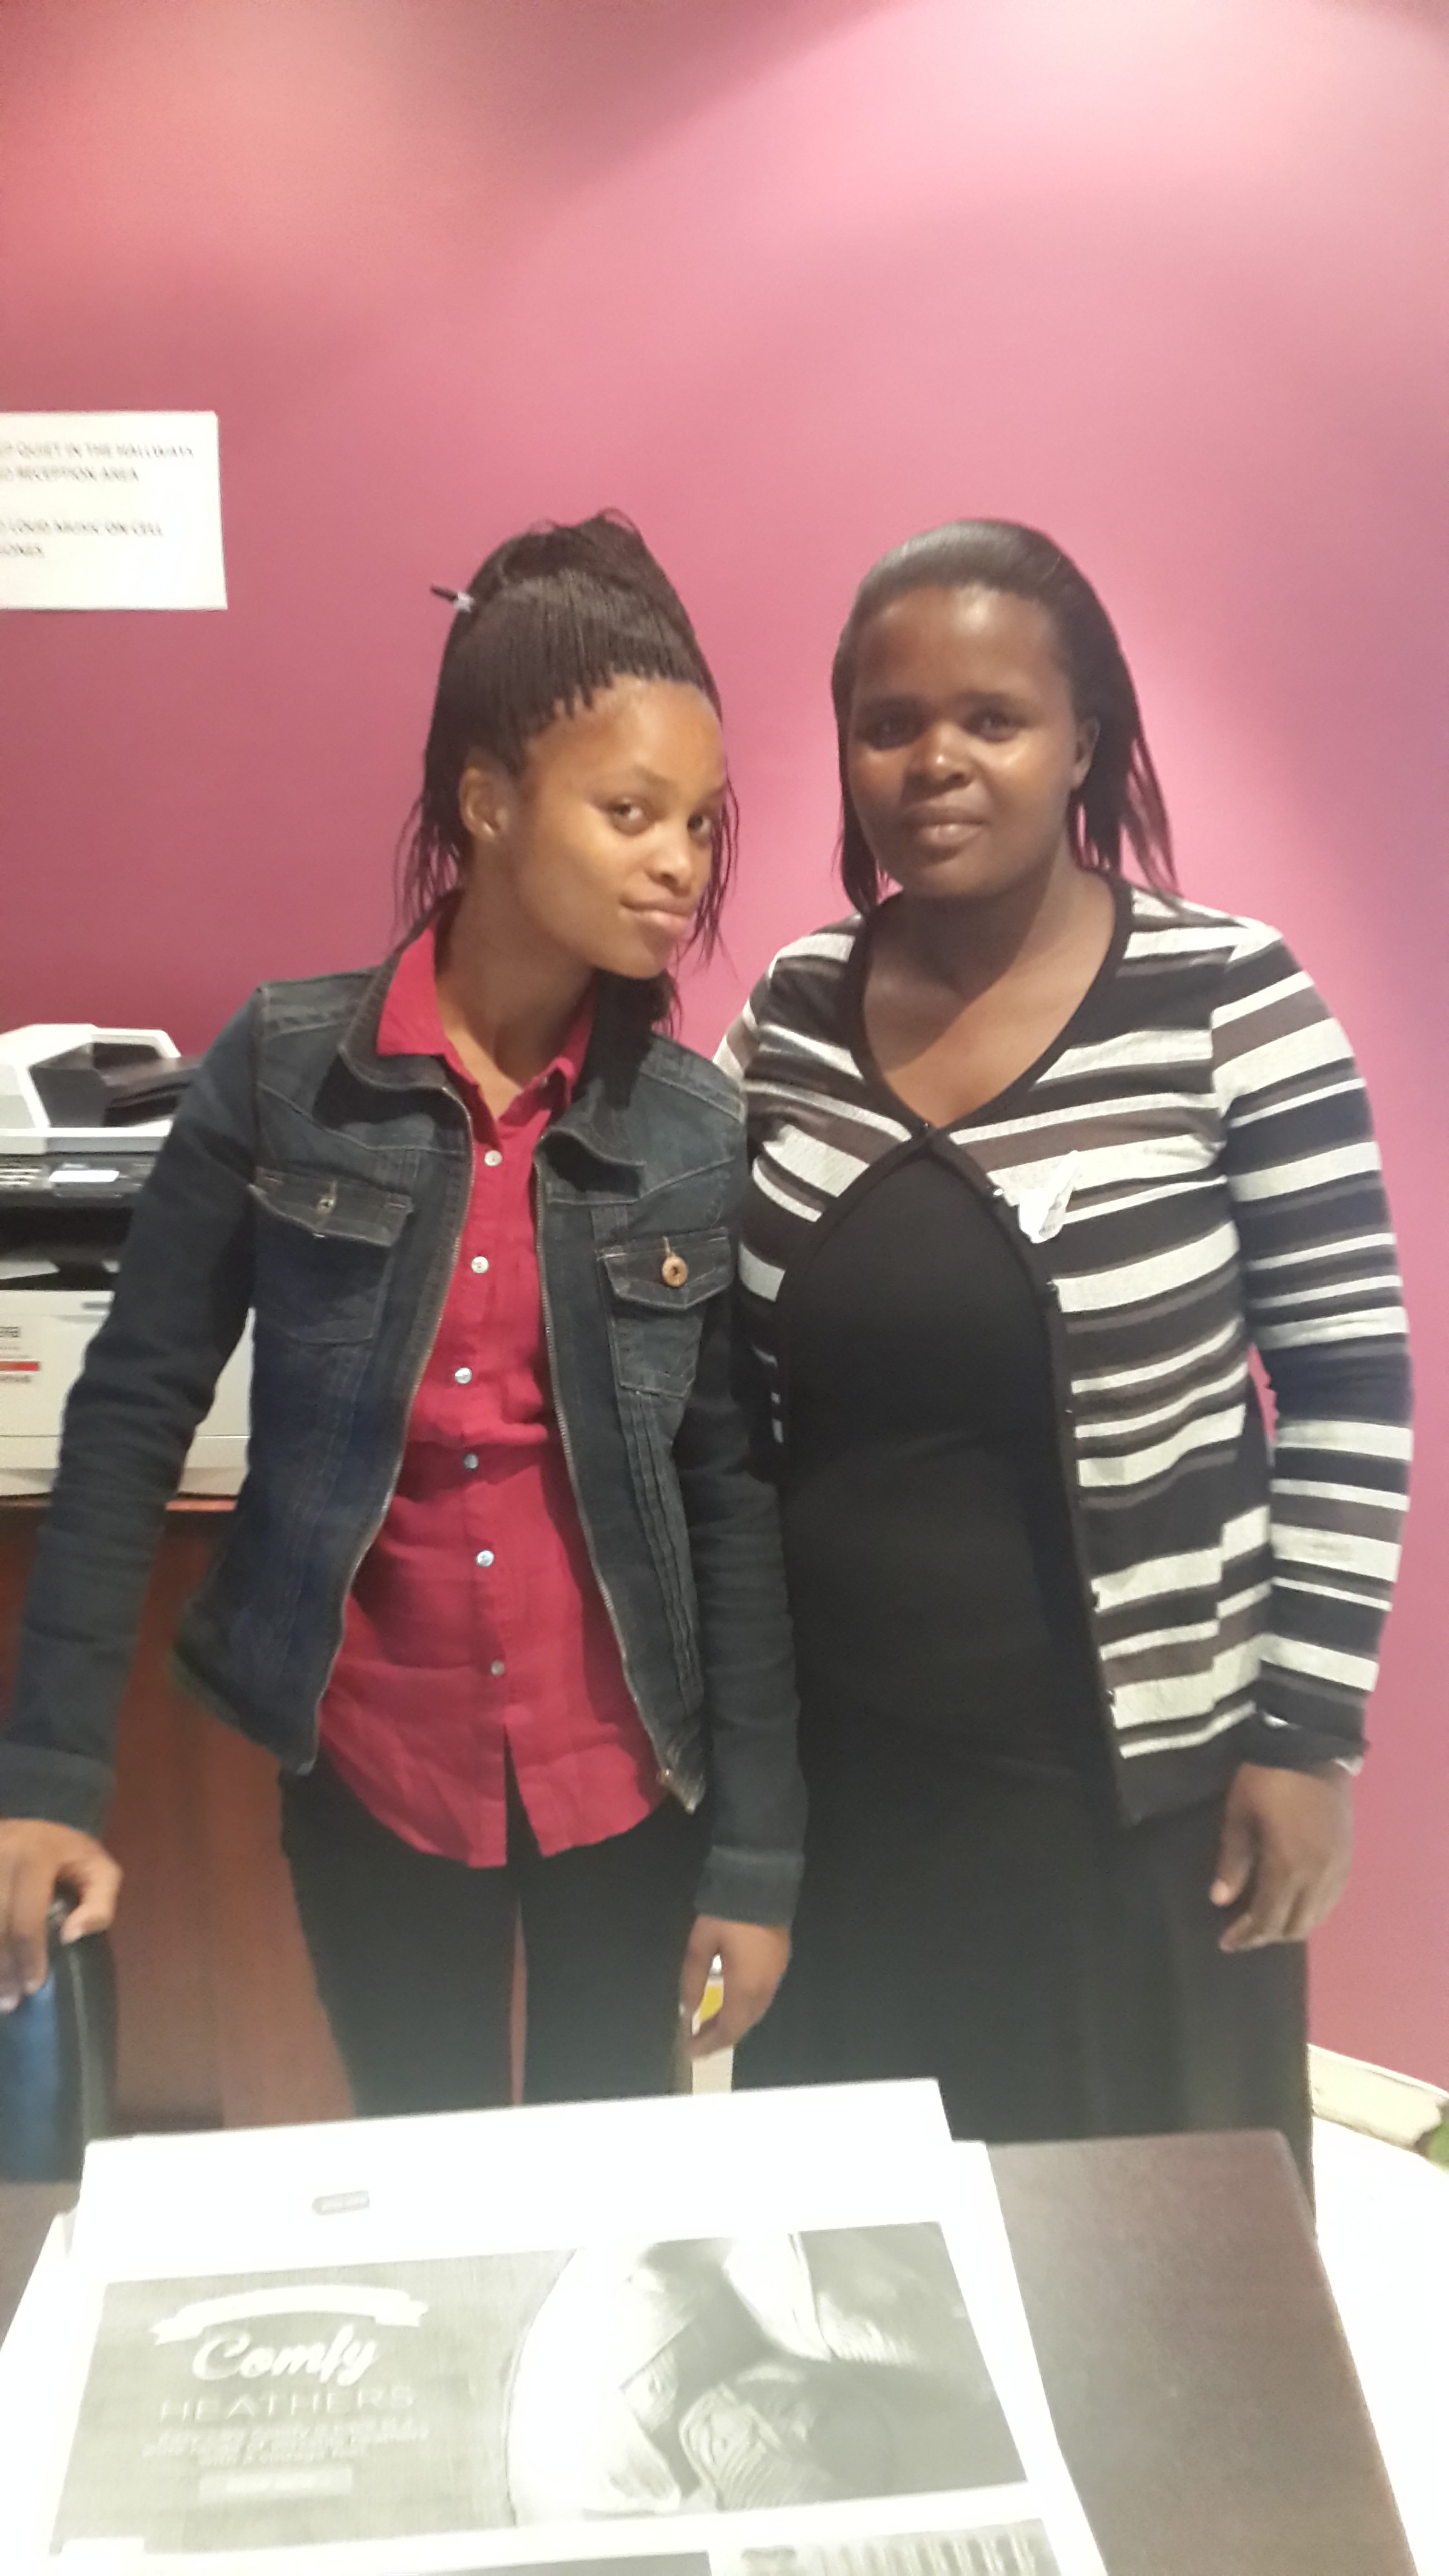 job shadow highs and lows fisantekraal centre for development faneka molodasi participated in fcd s job readiness programme during mid 2014 after spending most of her adult life as a domestic worker